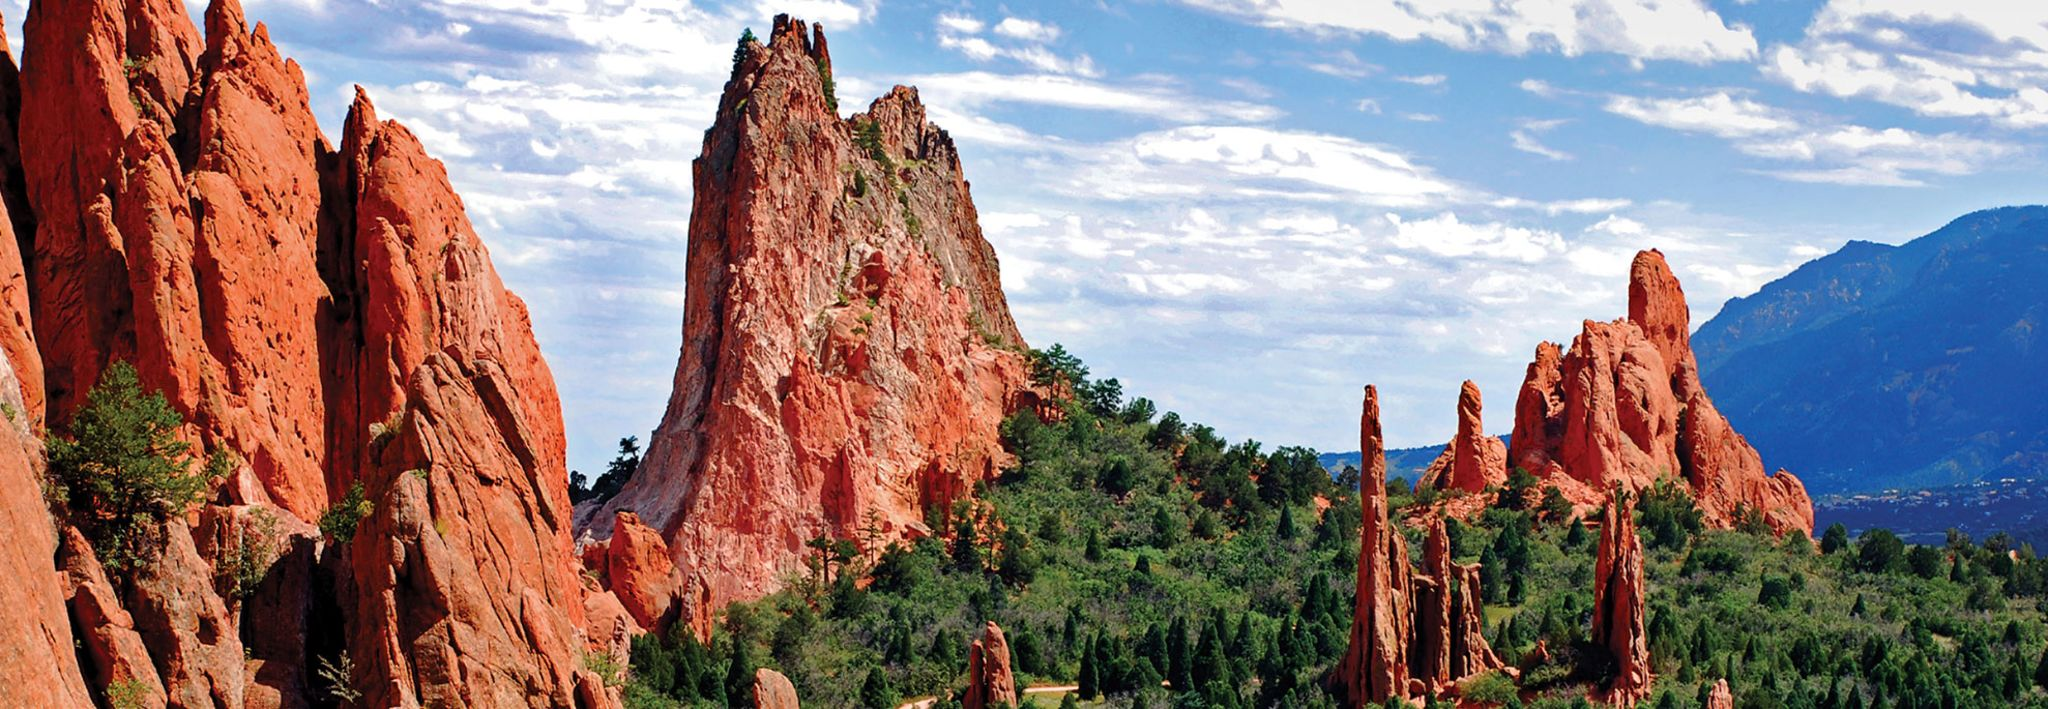 Close up view of the Garden of the Gods, which is near CCU's Colorado Springs campus.